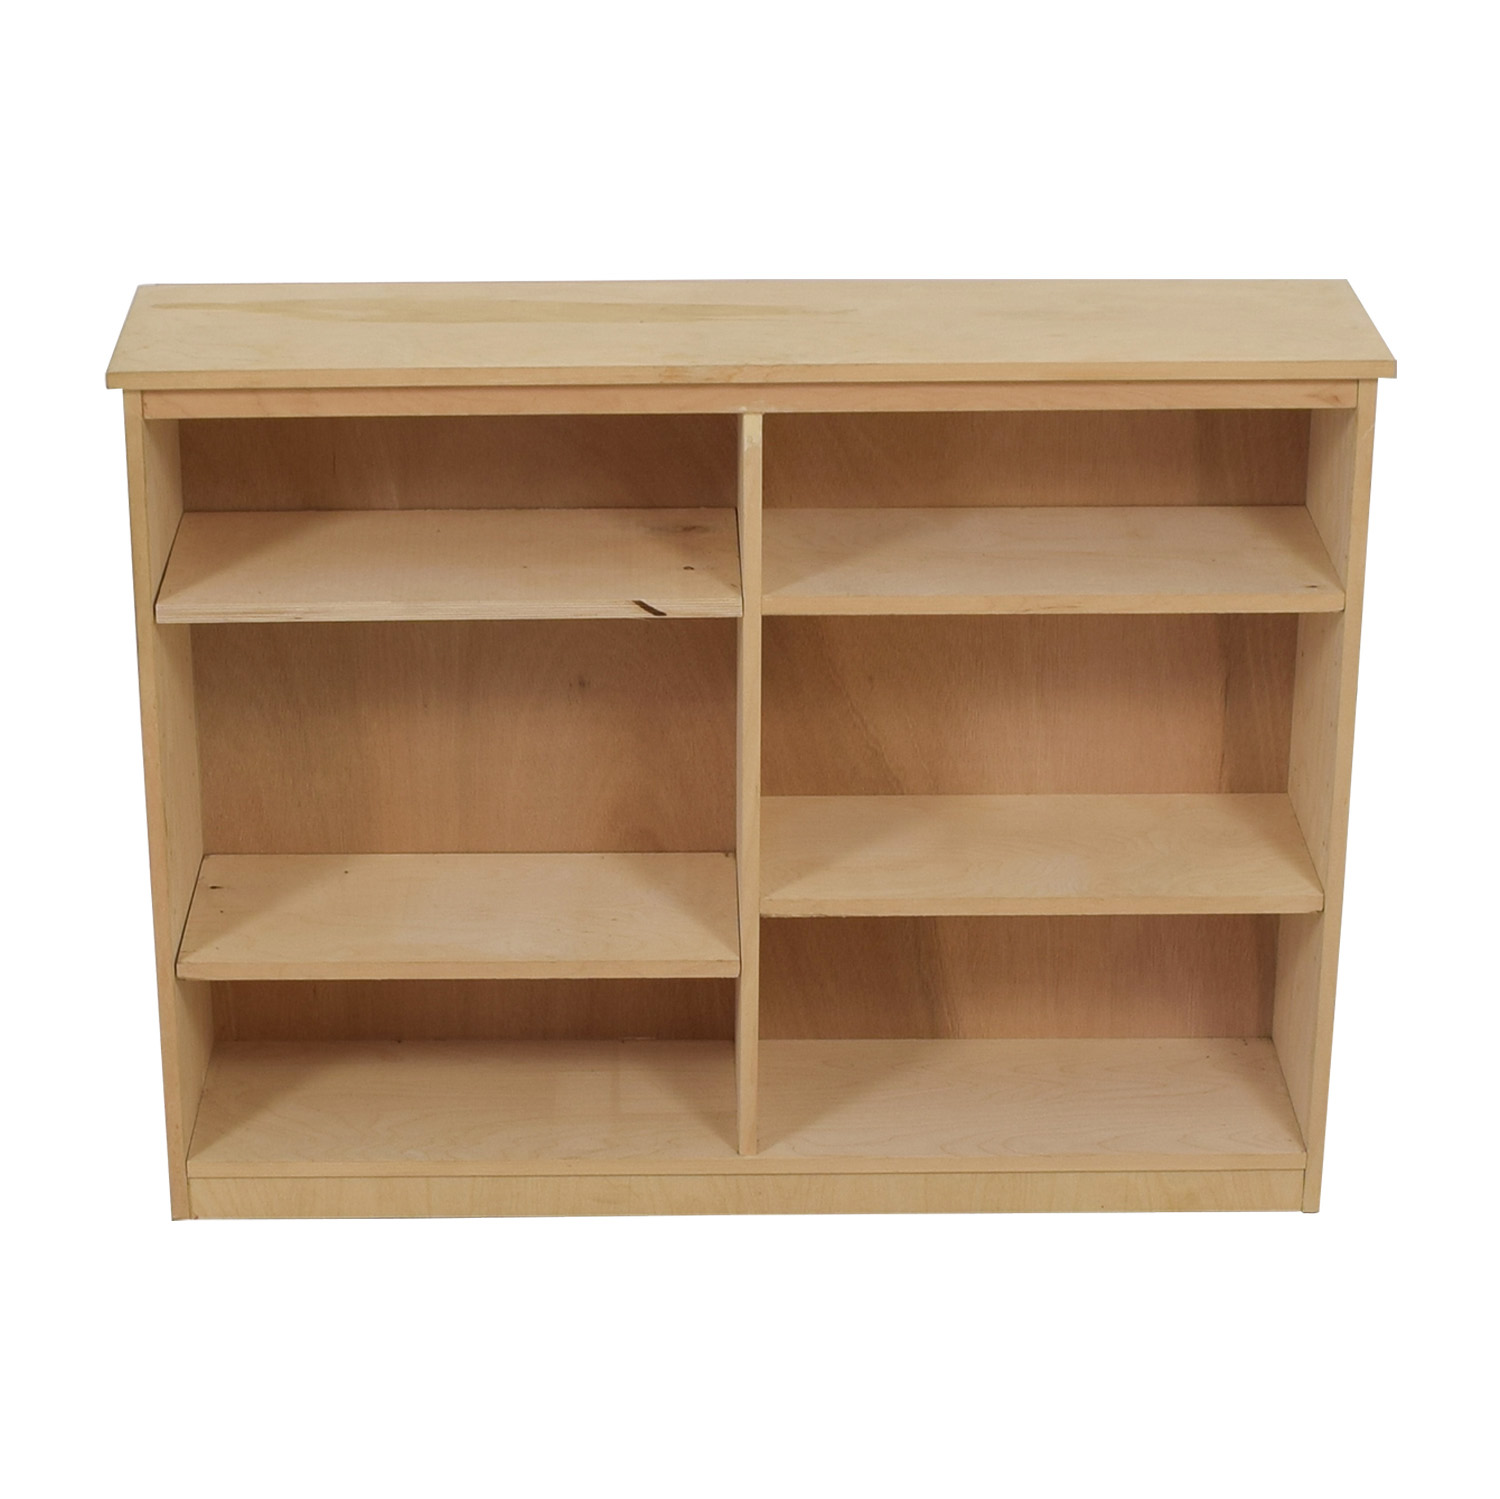 Gothic Cabinet Craft Furniture Unfinished Wood Bookshelf Gothic Cabinet Craft Furniture